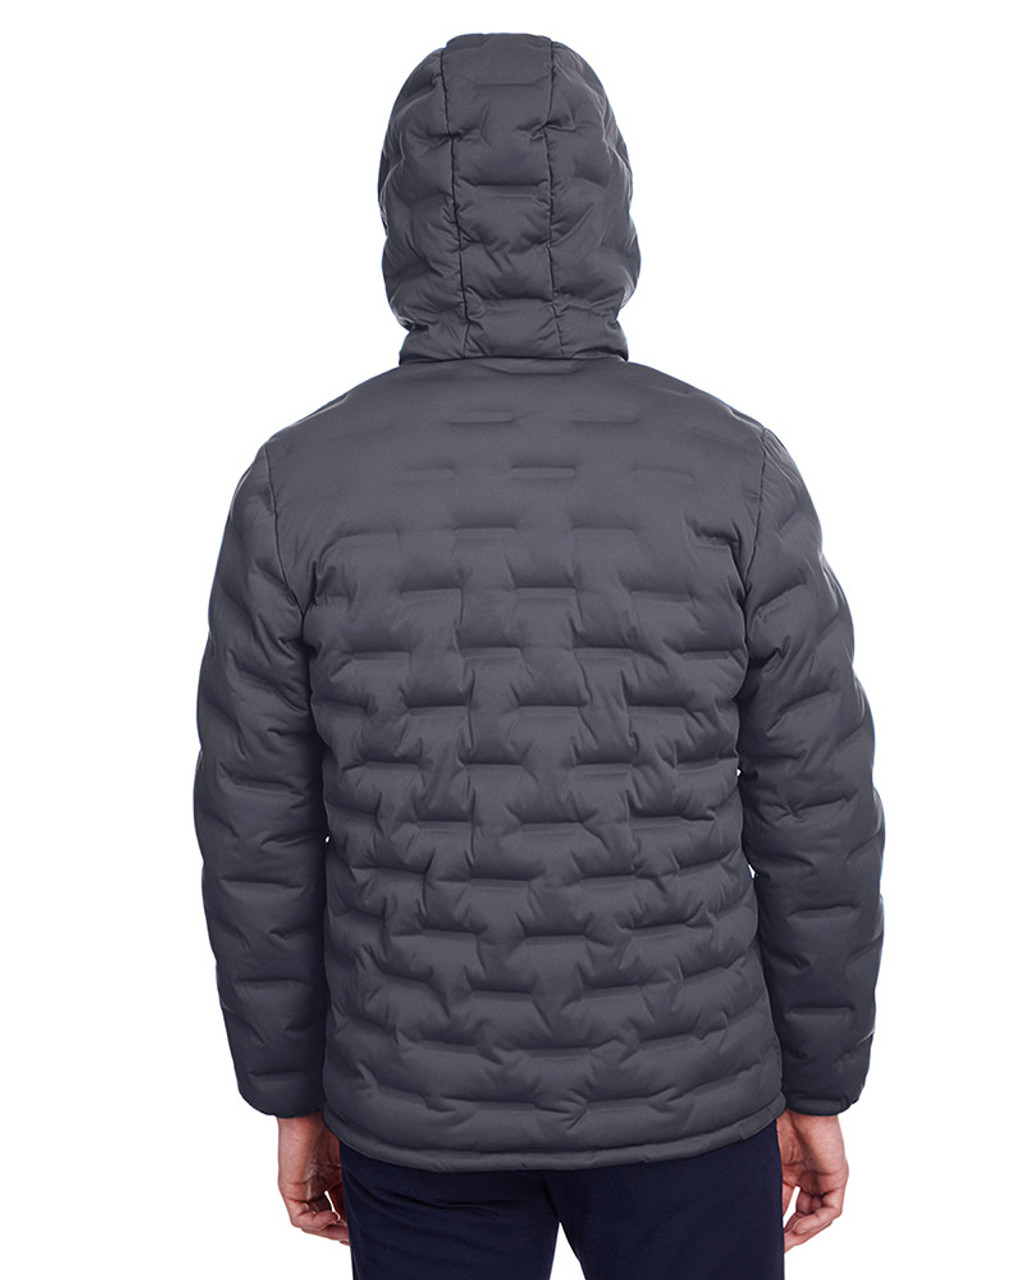 Carbon/Black - back, NE708 North End Men's Loft Puffer Jacket | Blankclothing.ca